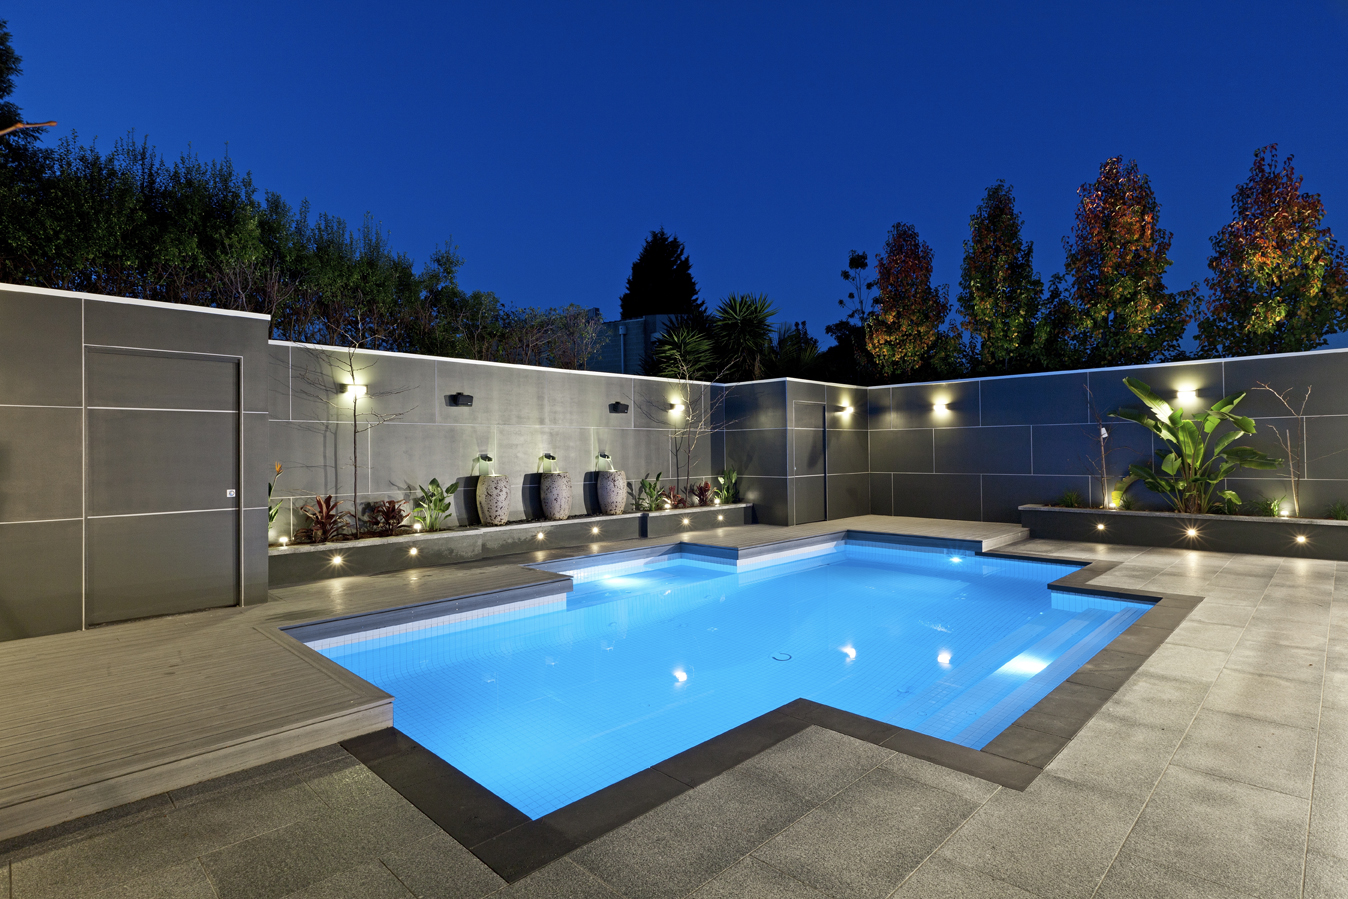 Backyard landscaping ideas swimming pool design for Swimming pool designs and plans